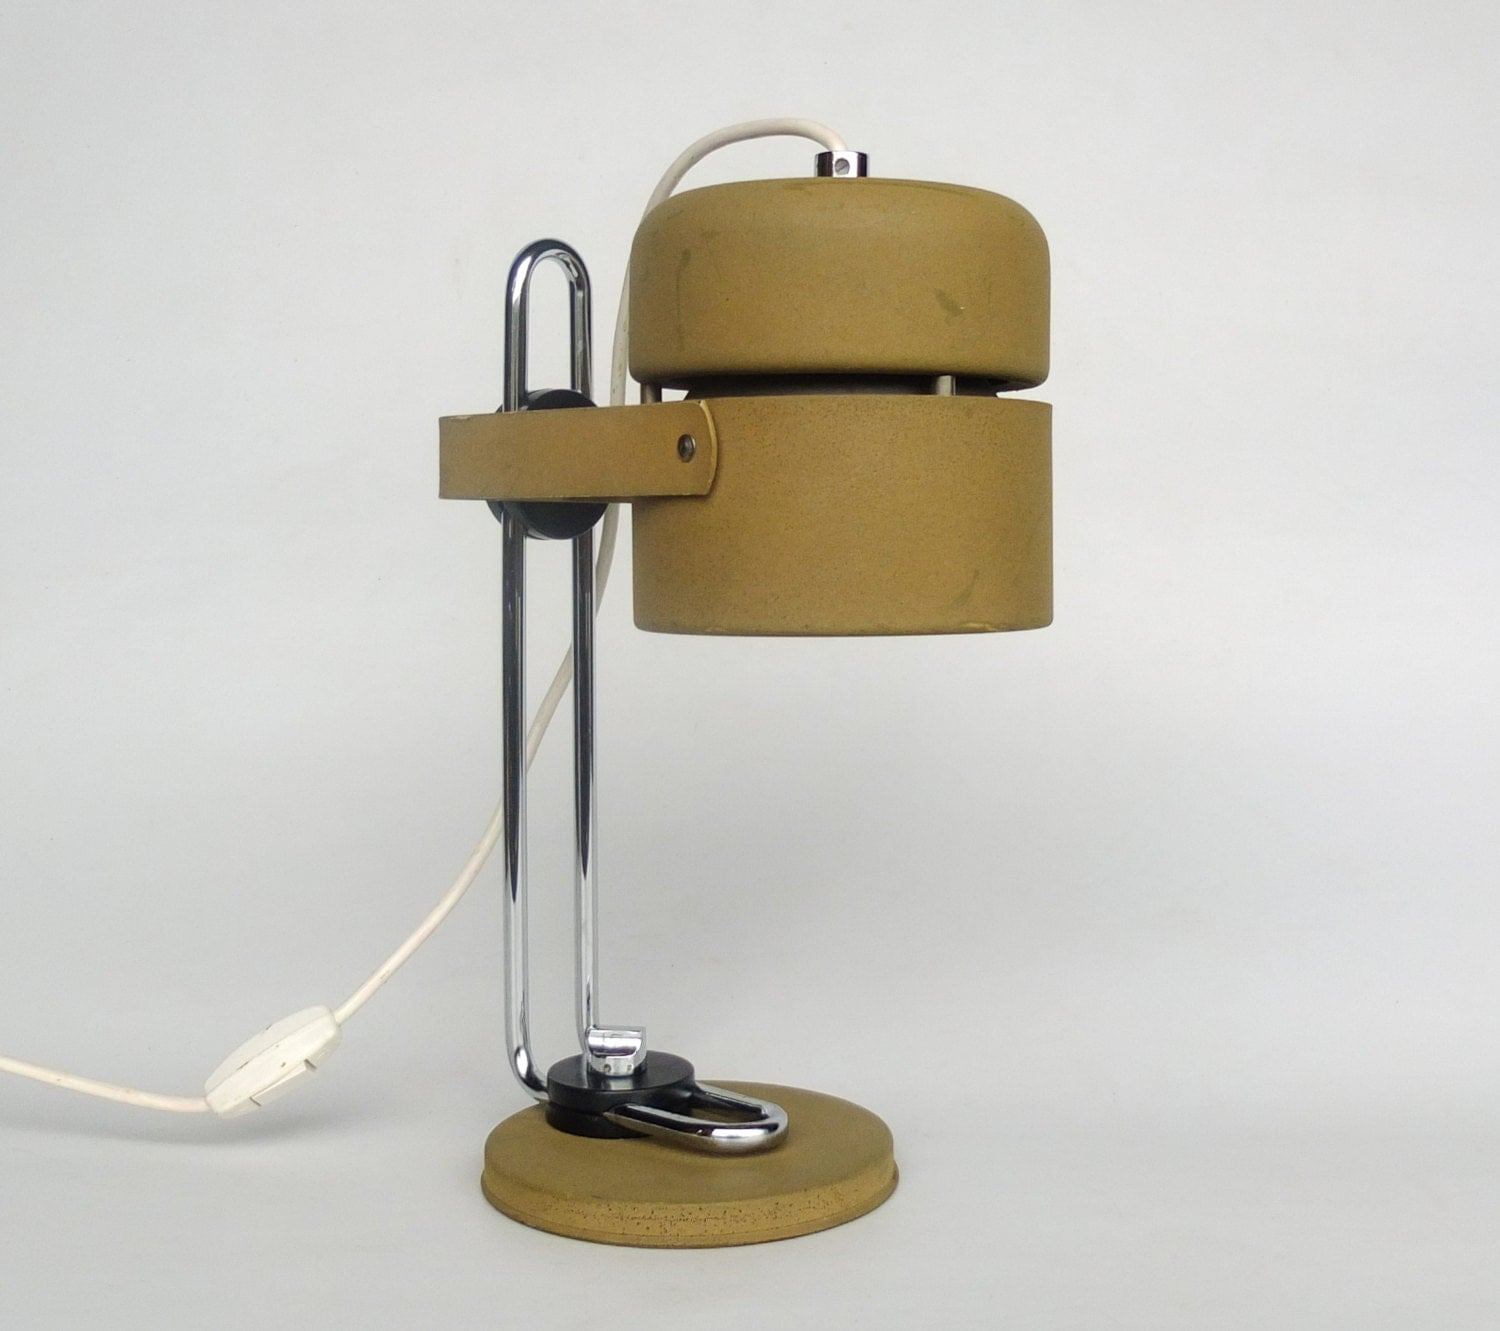 Vintage Industrial Desk Lamp / Office Desk Lamp / Adjustable